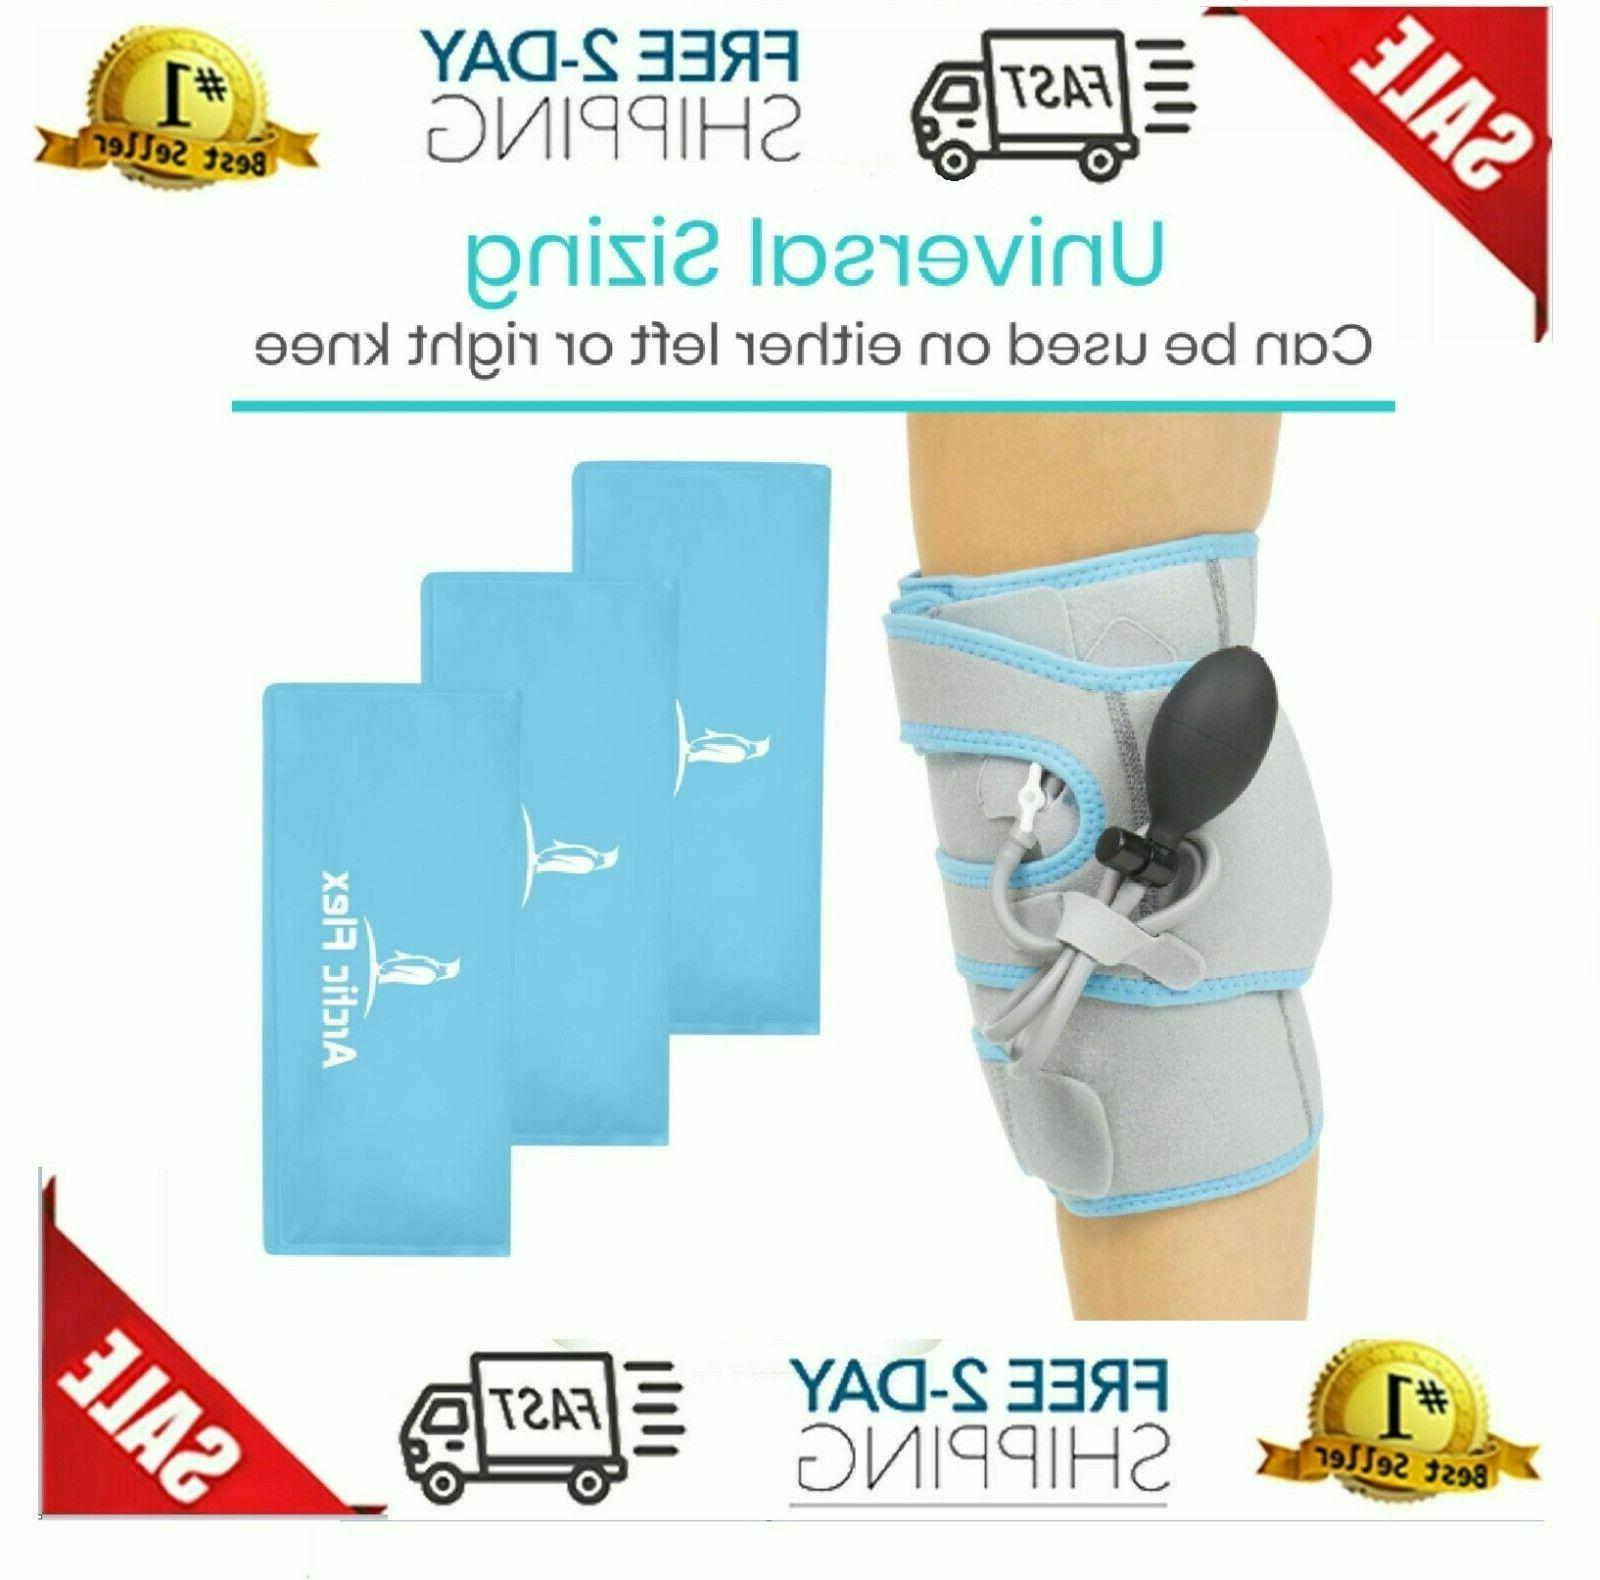 Vive Compression Knee Ice Wrap - Reusable With Air - Hot/Cold